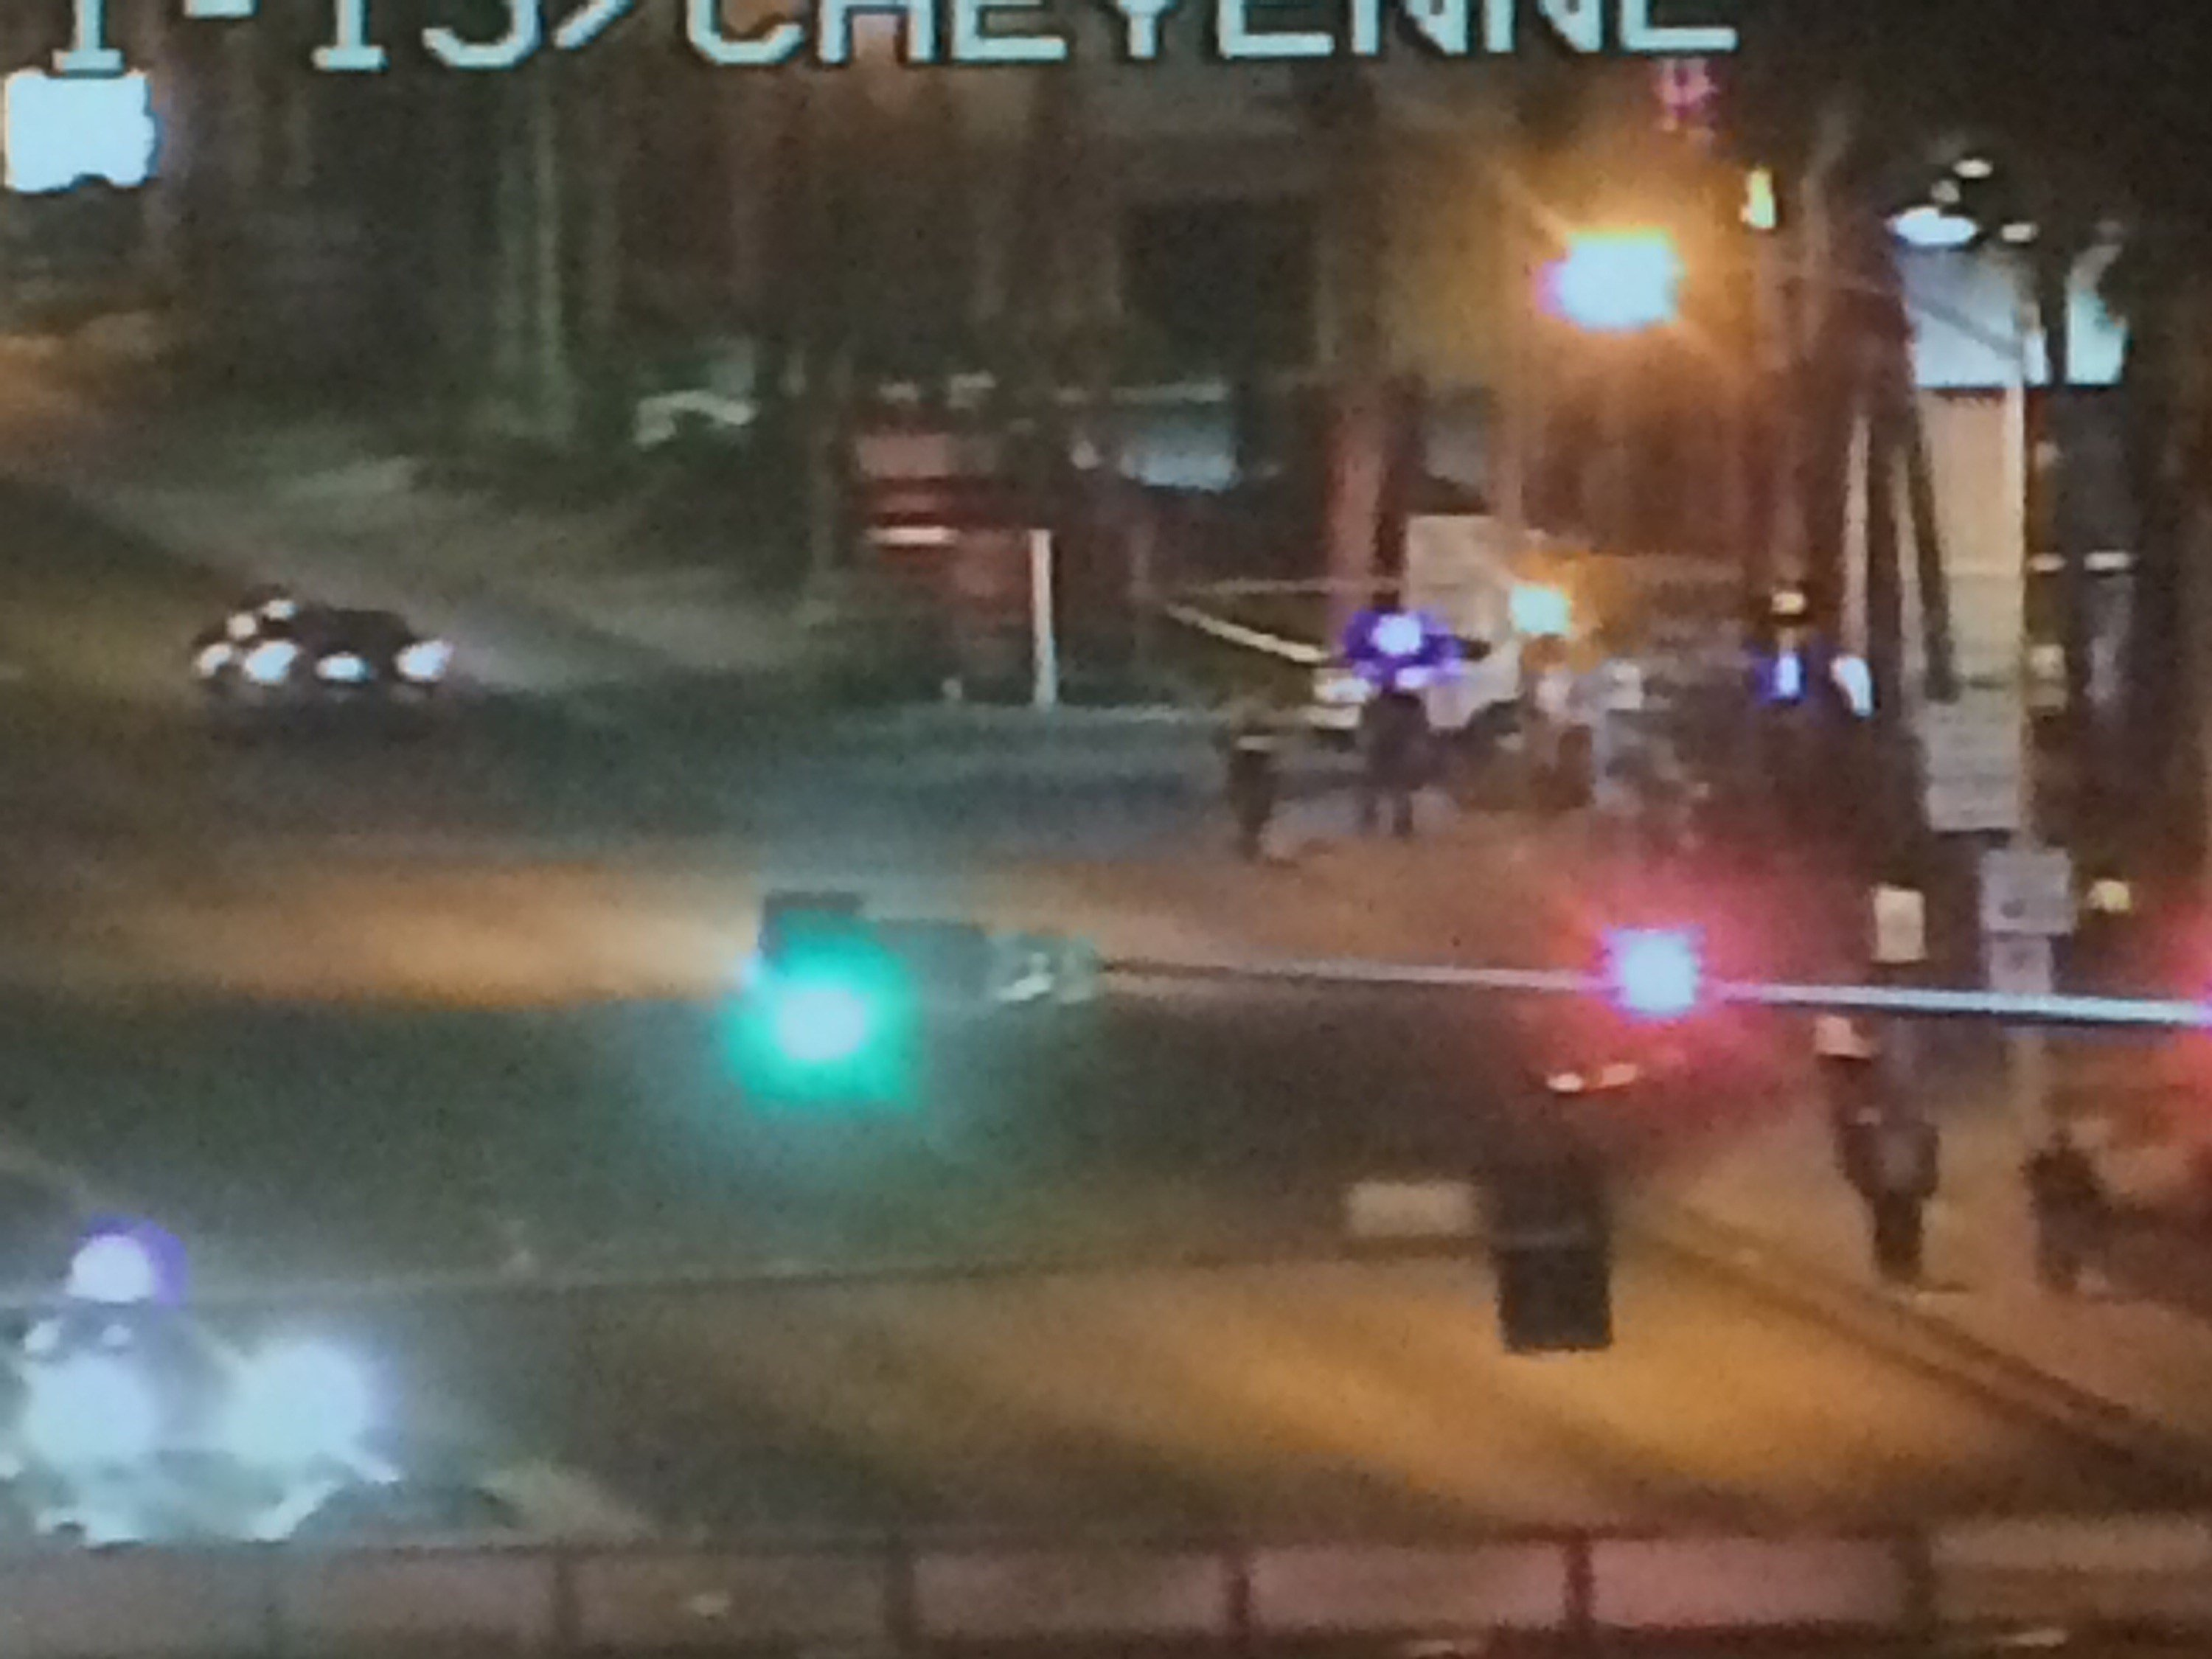 A man was shot and killed on East Cheyenne Avenue in North Las Vegas Thursday.